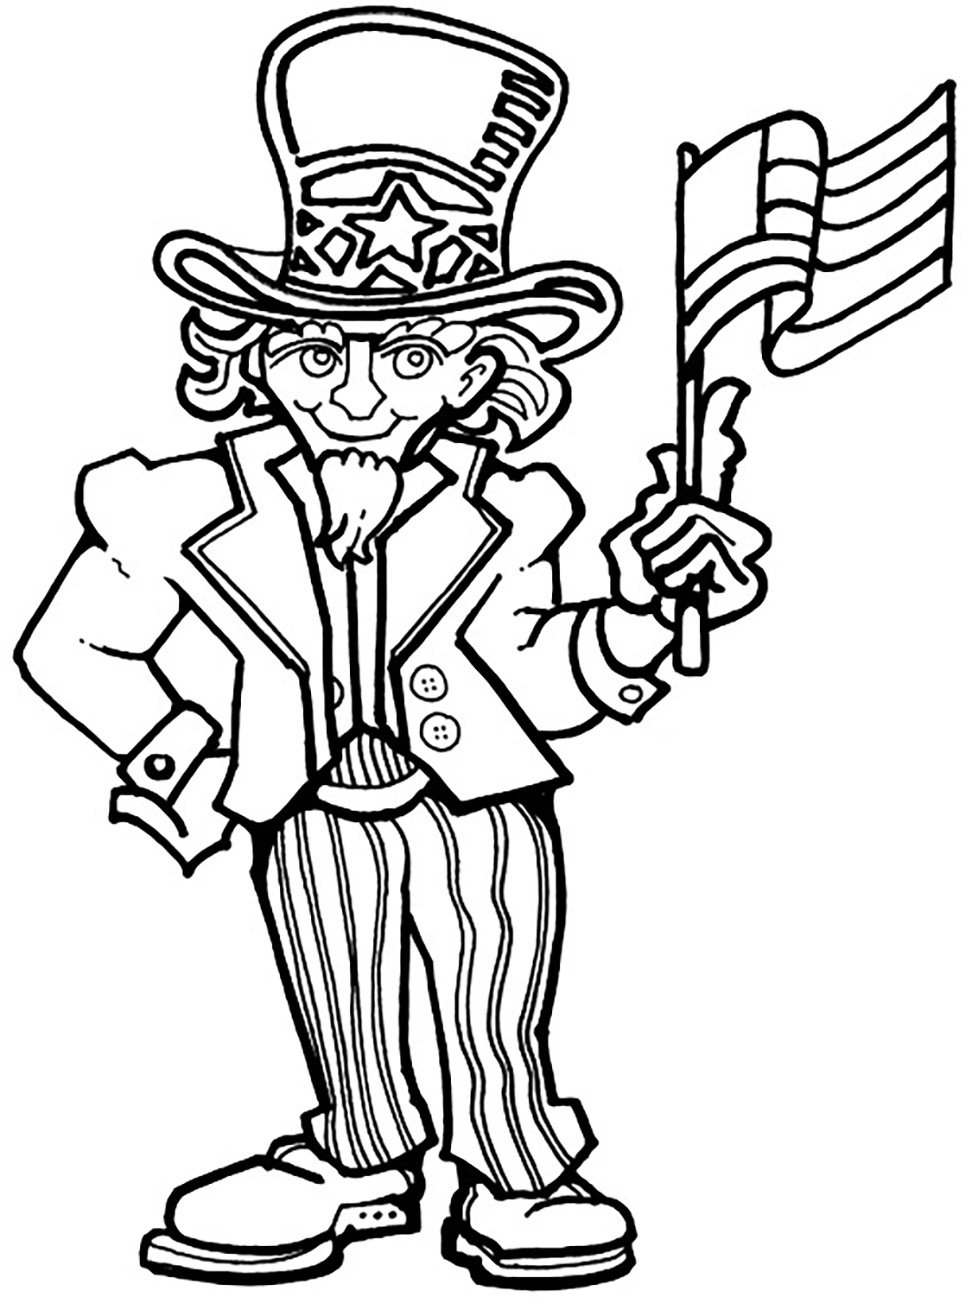 presidents day coloring pages - free 4th july coloring pages